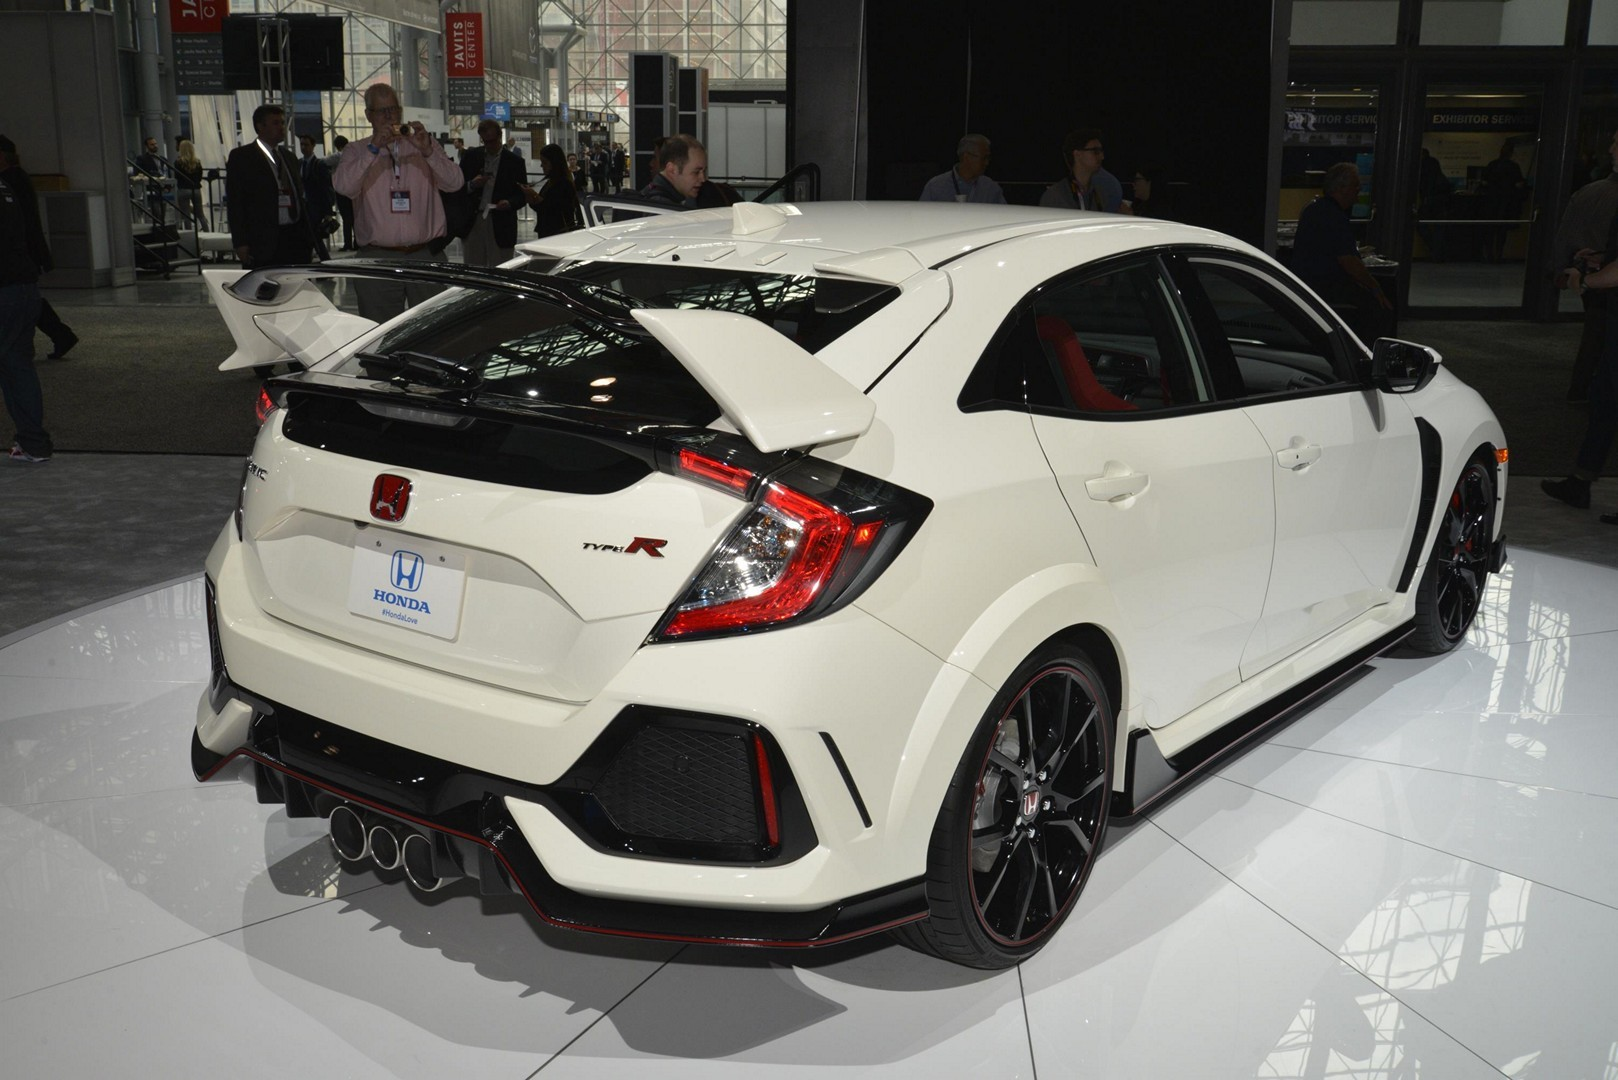 2018 honda civic type r priced in the uk from 30 995 autoevolution. Black Bedroom Furniture Sets. Home Design Ideas